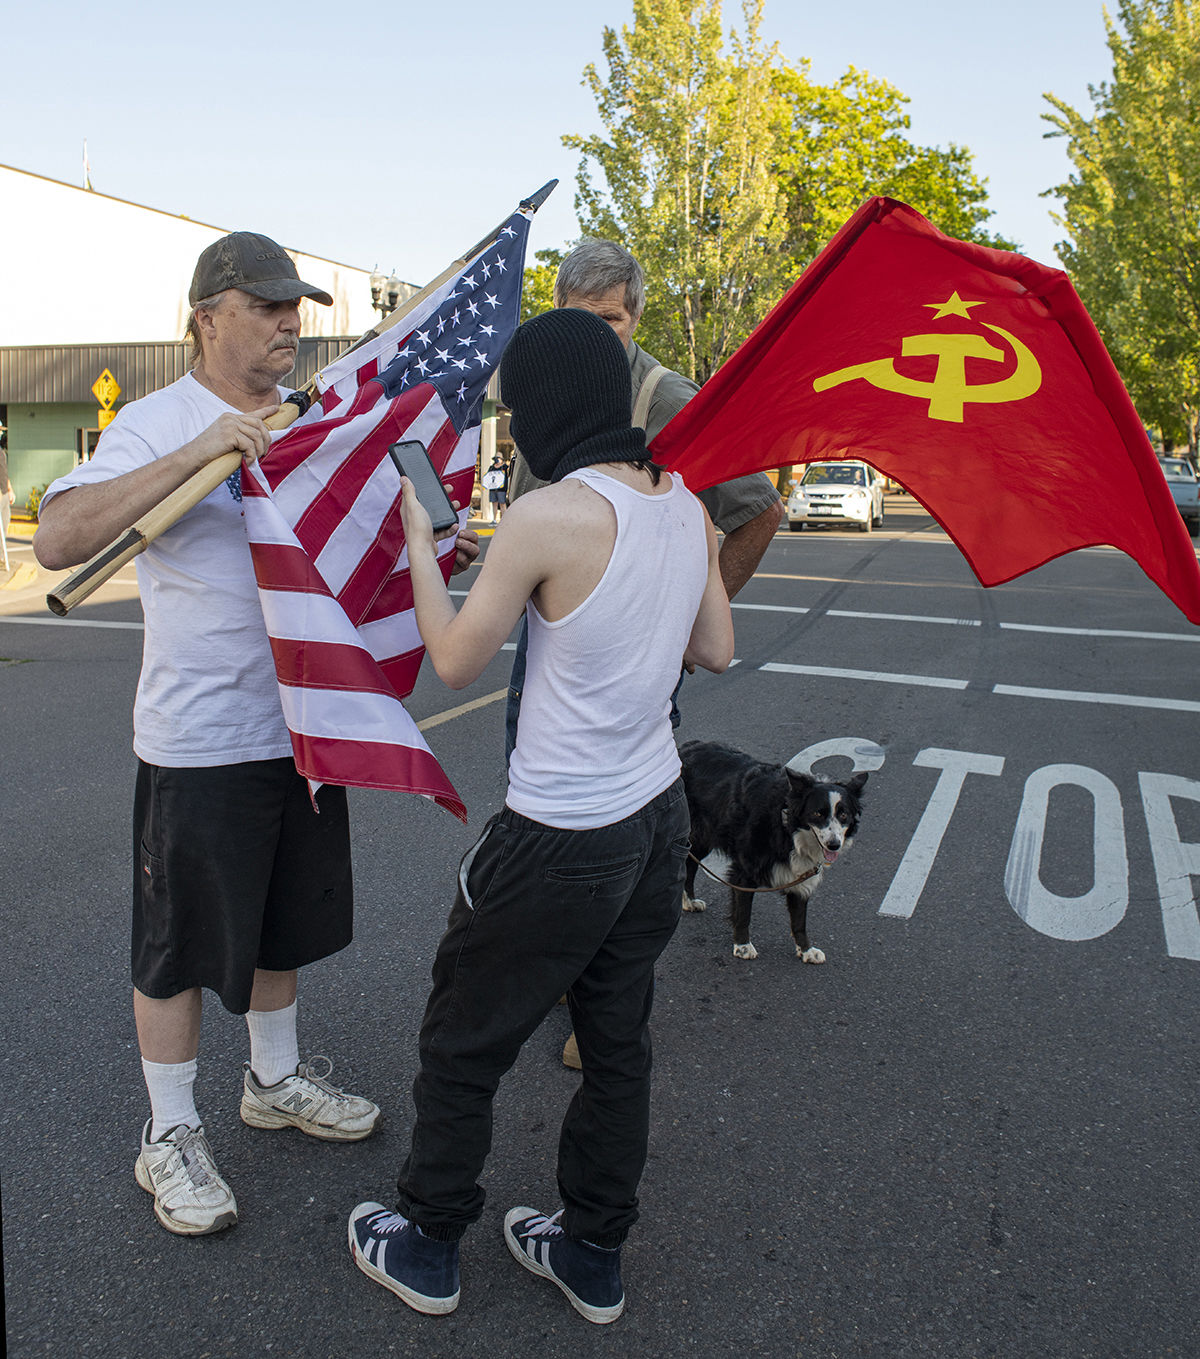 An attendee of the All Lives Matter rally, left with American flag, faces off with a counter protester., right, in black ski mask, with a flag with the communist hammer and sickle. About 250 people gathered at the Springfield, Oregon, library for what was billed as an All Lives Matter rally Friday at 7 p.m. About a dozen counter protesters also attended. The event was mostly peaceful, although a couple of minor scuffles broke out and one man was taken into custody by the Springfield police. By 9:30 p.m. both the protesters and the counter protesters dispersed. Photo by Dan Morrison